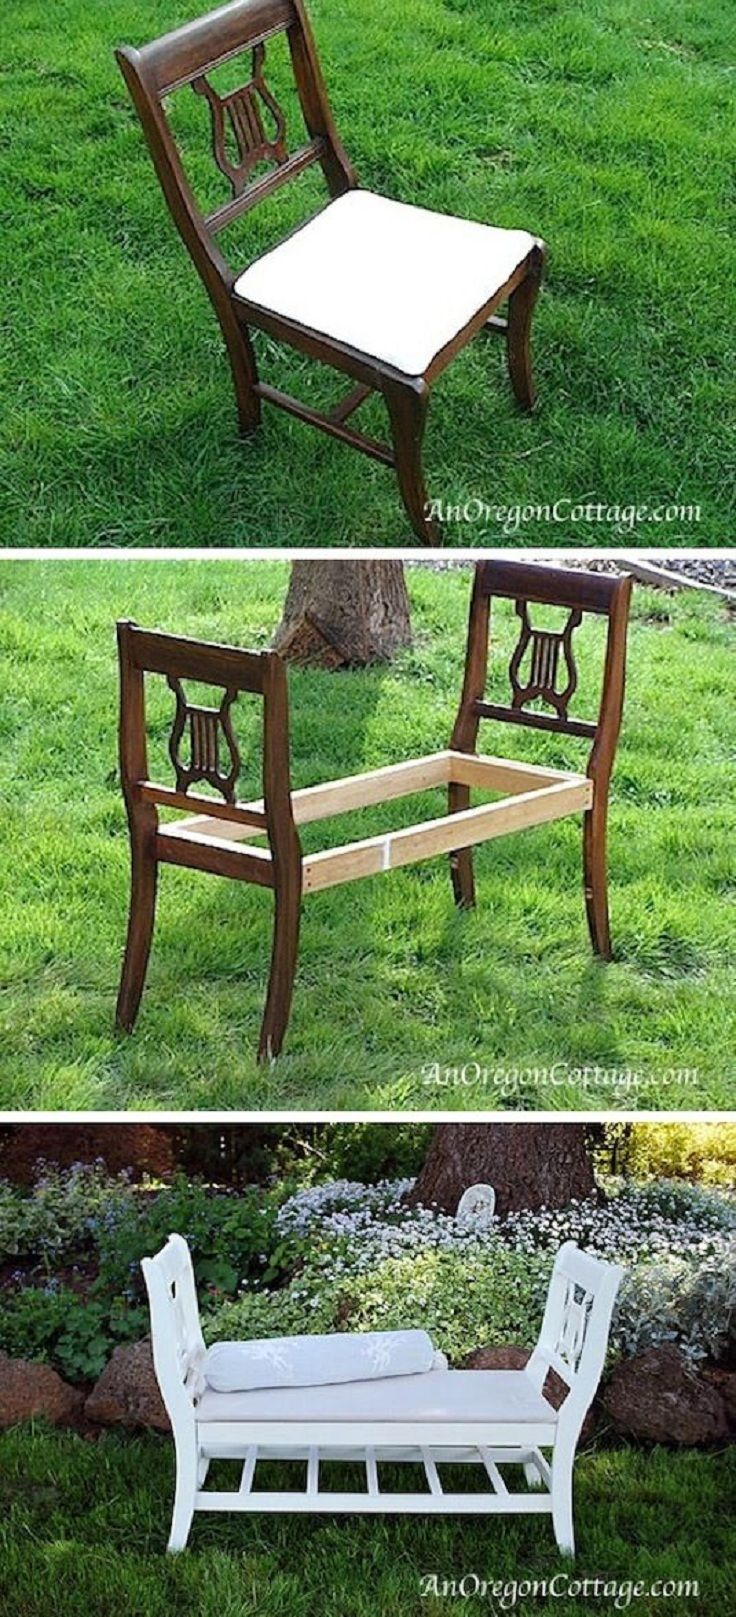 DIY Furniture Chairs. I couldn't do this to our chairs, maybe if I found cheap ones somewhere